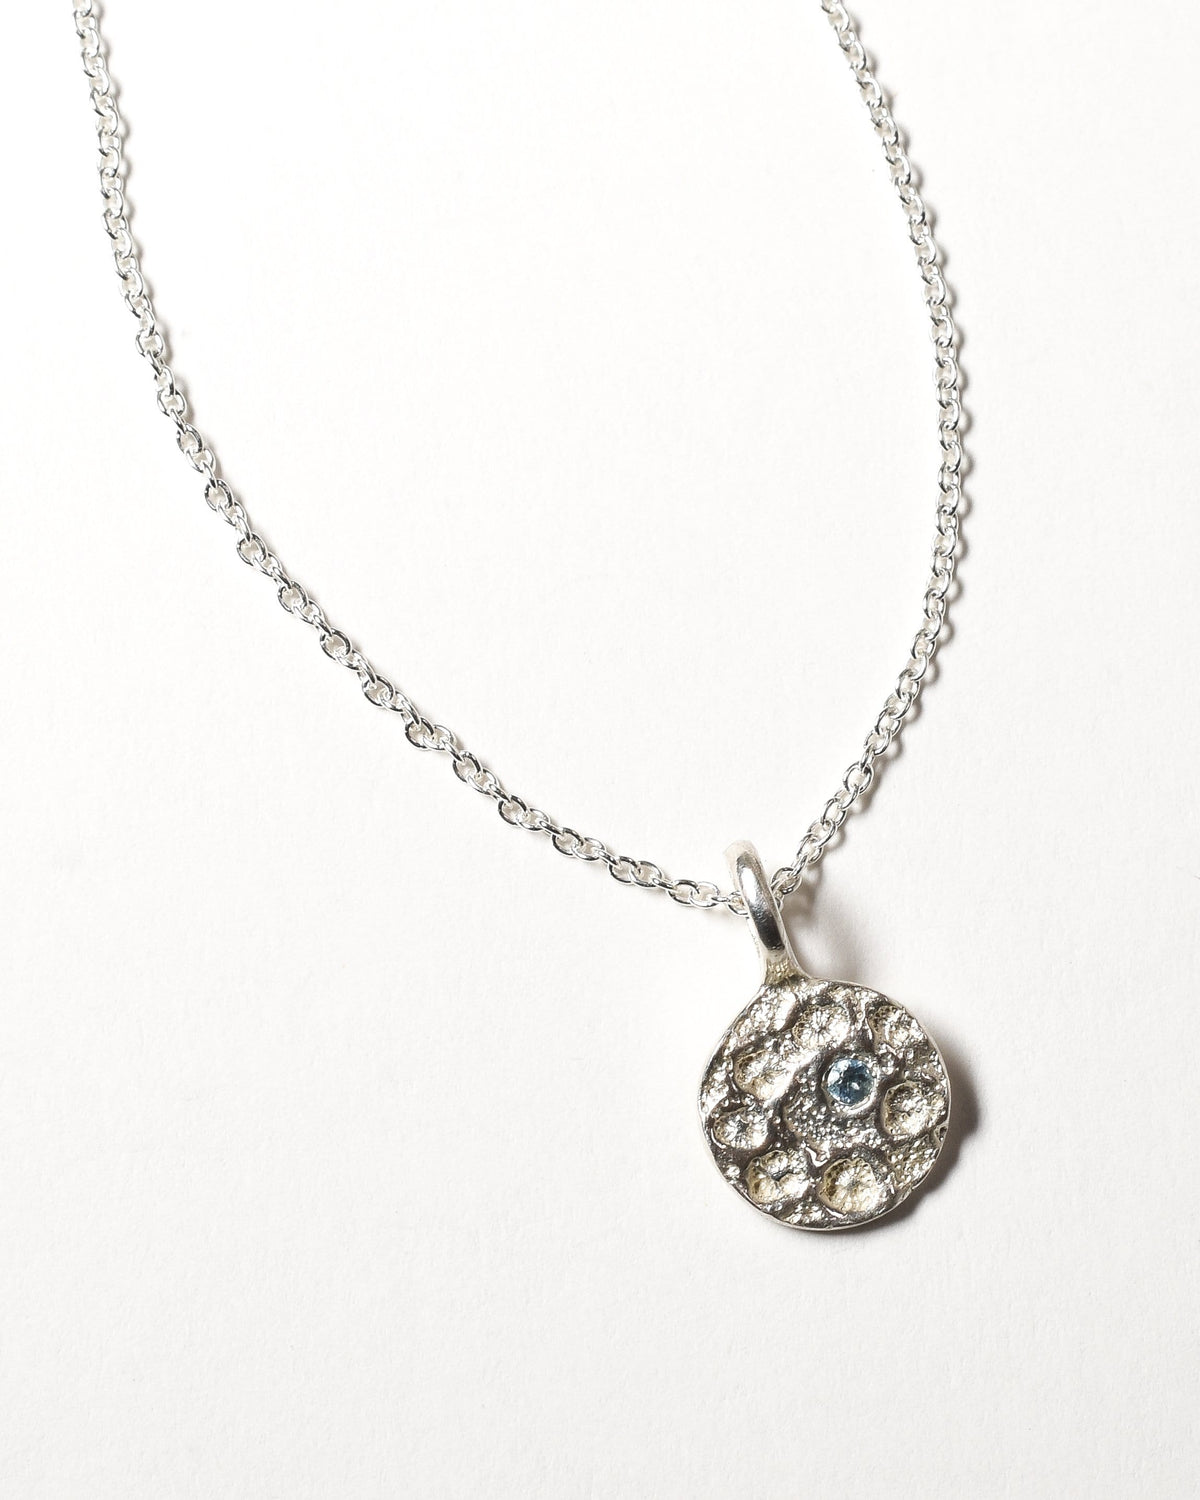 Aquamarine Birthstone Necklace - March - Sterling Silver